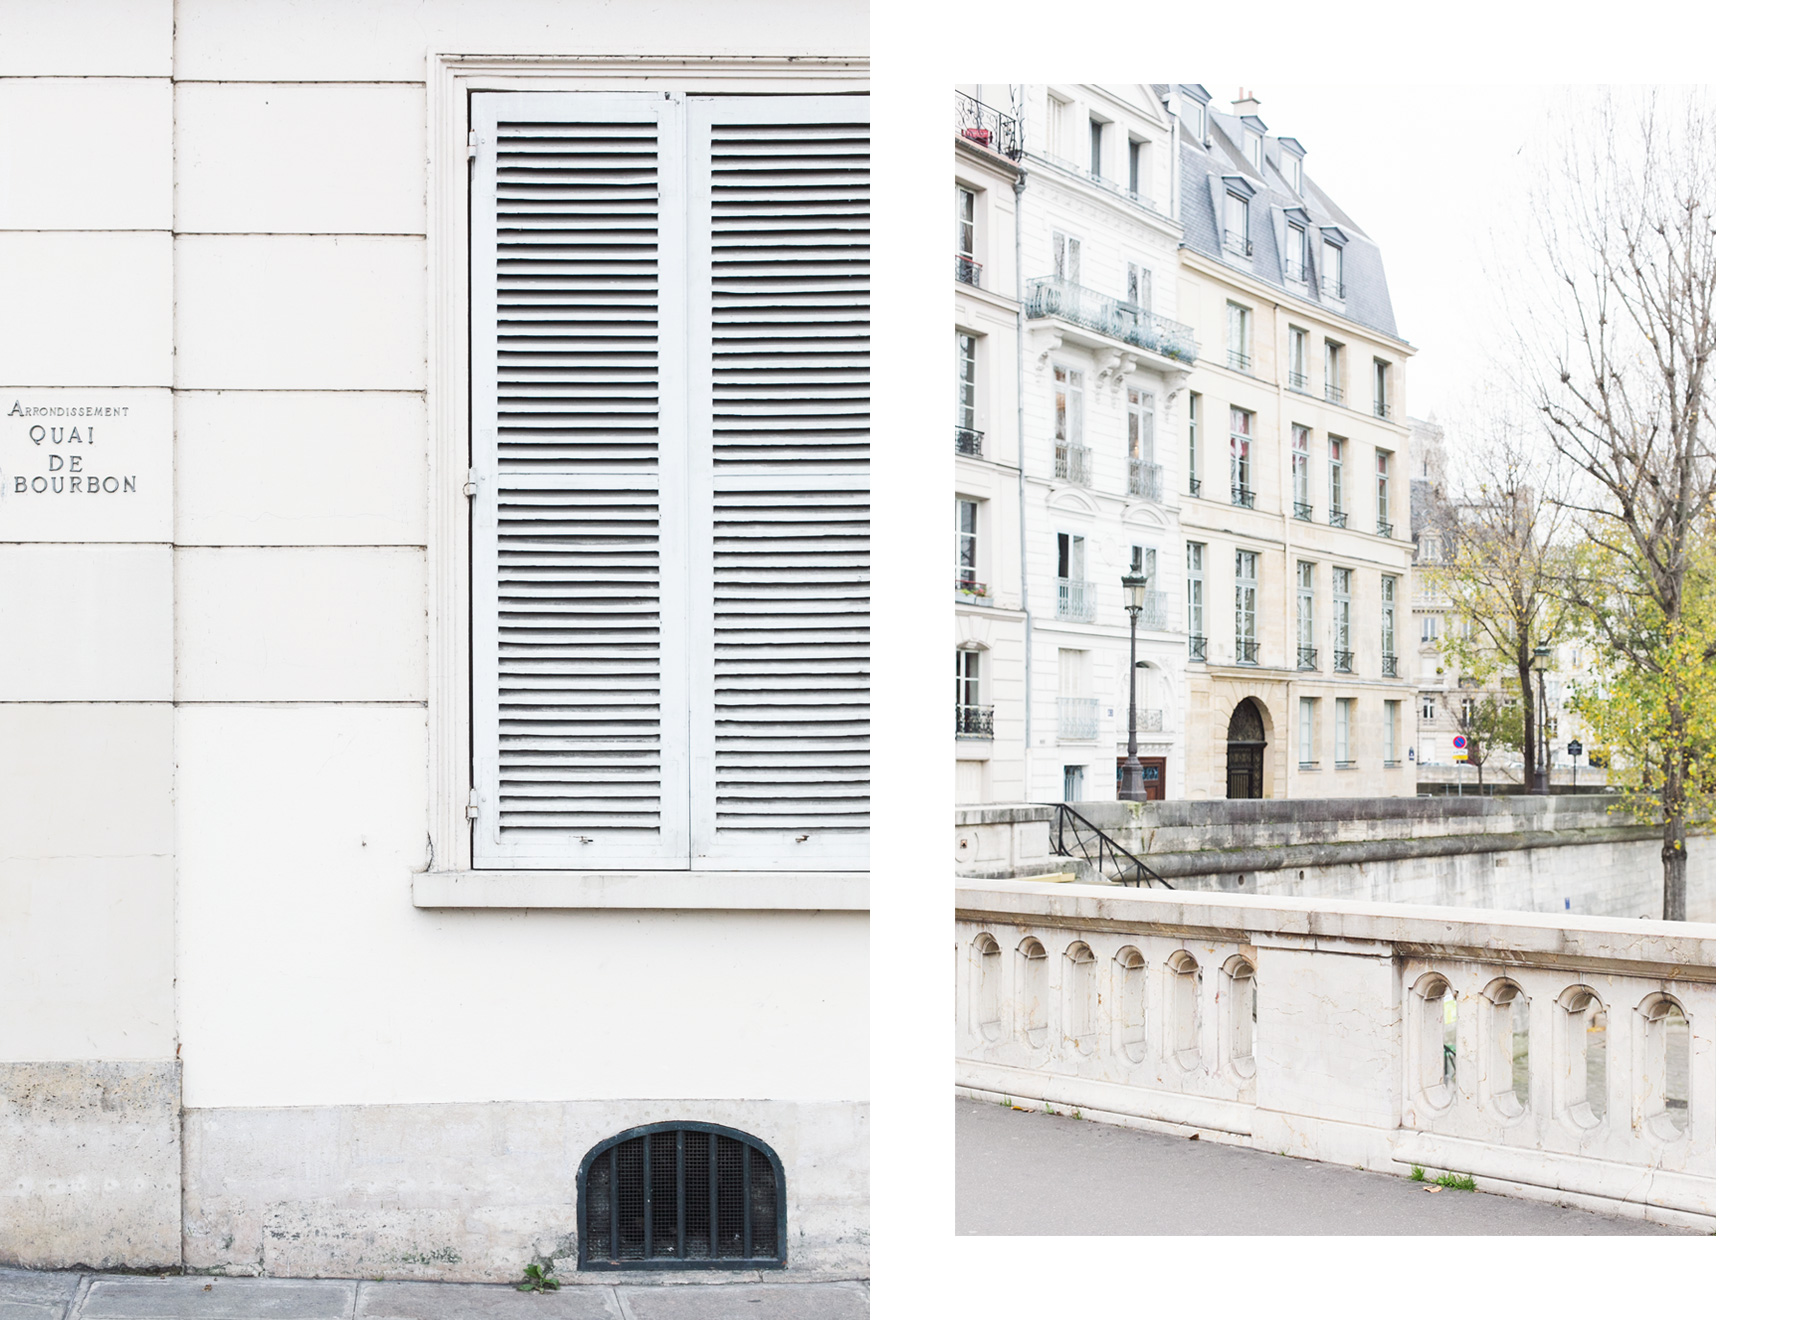 Around the 4th arrondissement